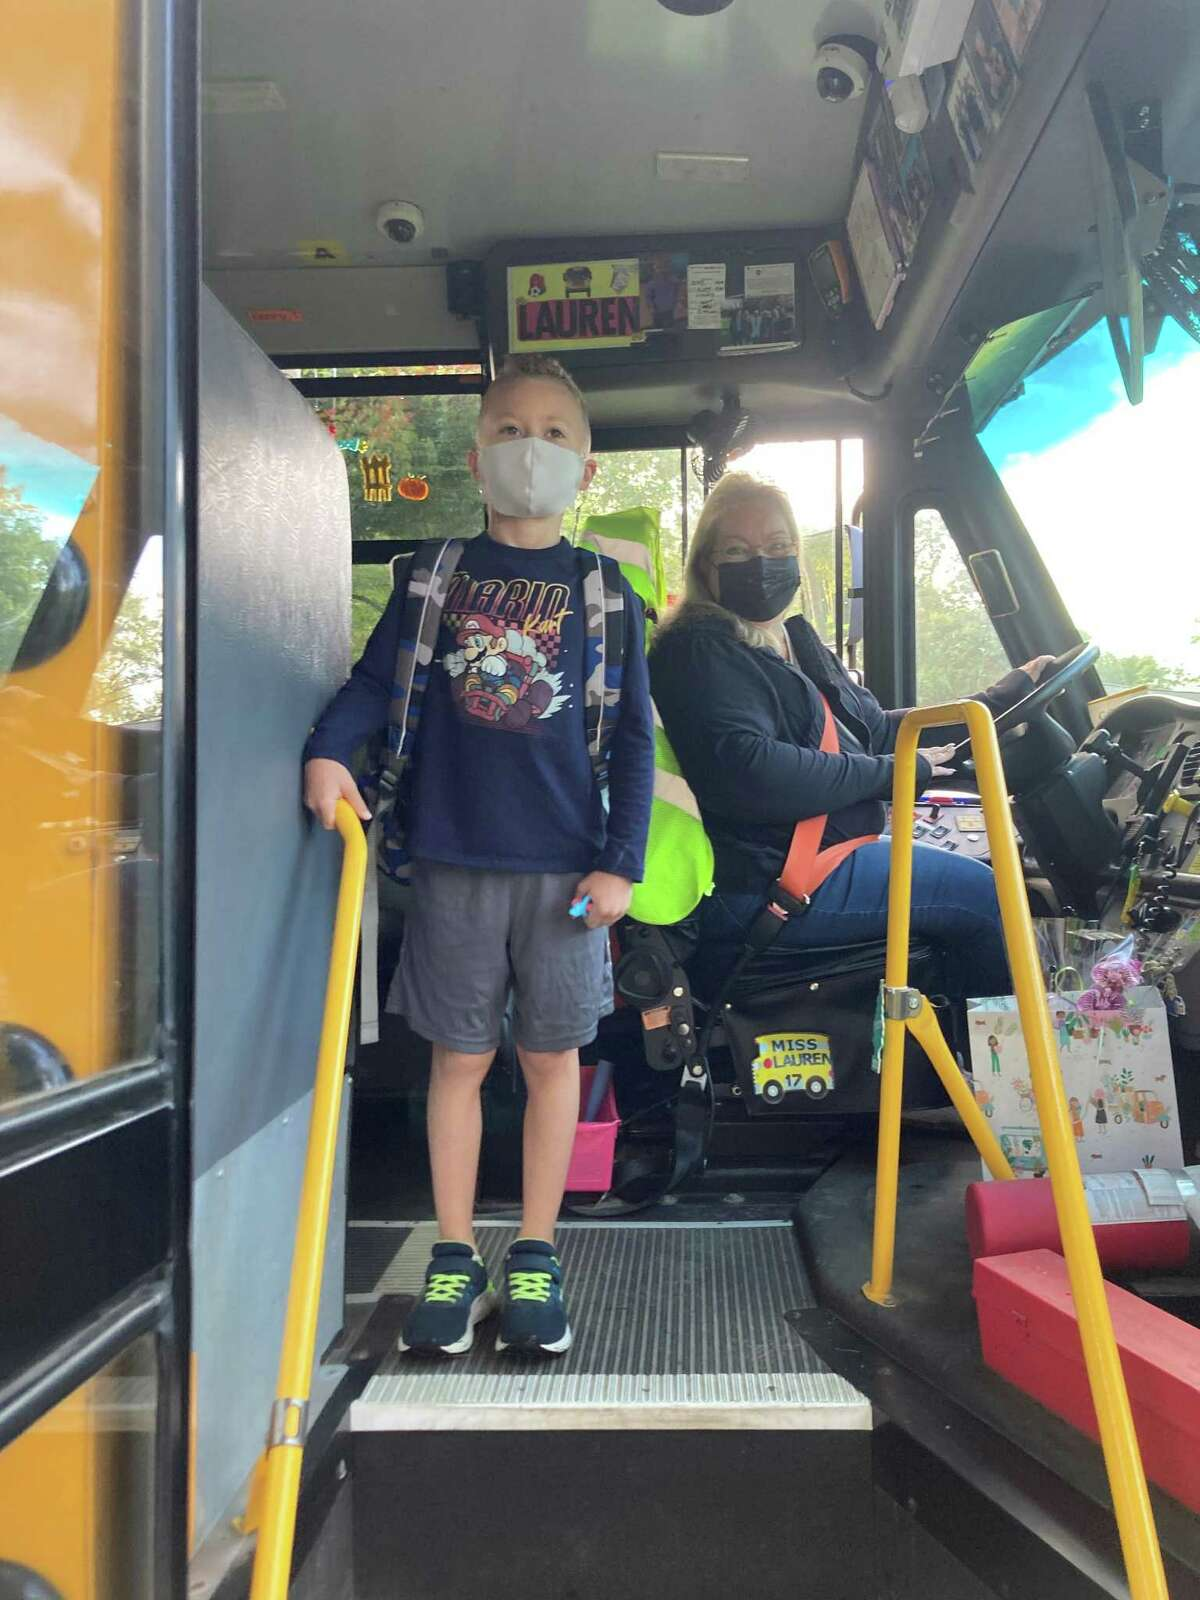 Ridgebury Elementary School second grader Gavin Landy boards the bus while posing for a picture with his bus driver, Lauren Sheridan Scavo.